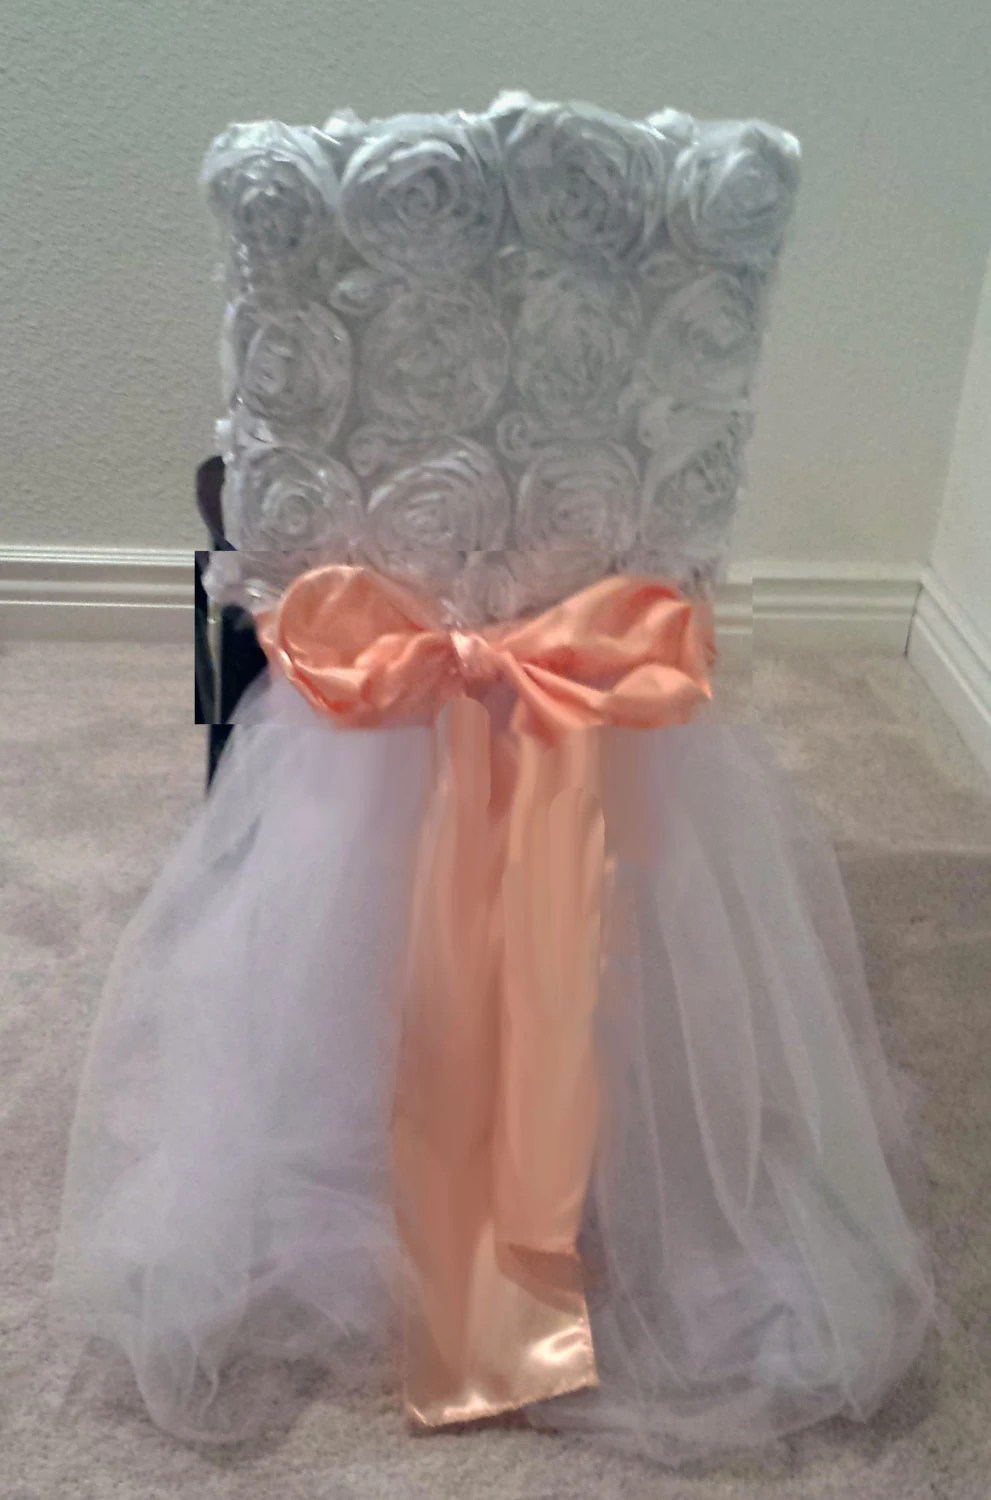 dorm chair covers etsy target sling back chairs tutu skirts